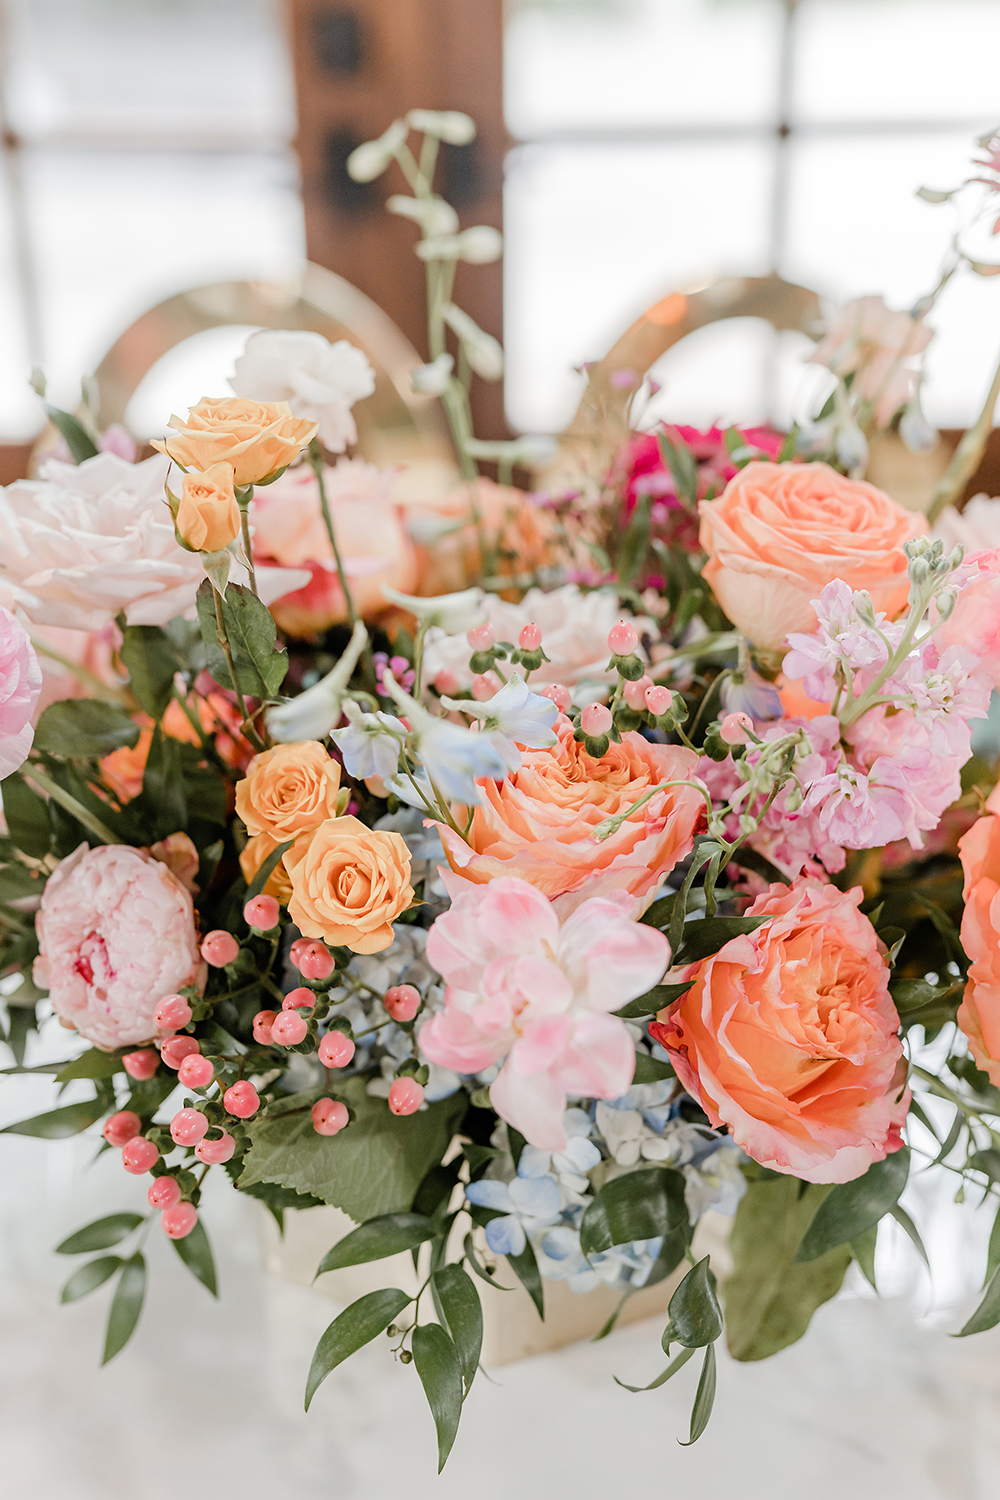 A floral arrangement made up of Silver dollar Eucalyptus, Huckleberry, Italian and Isralie Ruscus, Free Spirit Roses, Sweet Eskimo Roses, LightBlue Delphinium, Raspberry Wax Flowers, Pink Stock, Coral Hyperium Berries, and Light Blue Hydrangea.